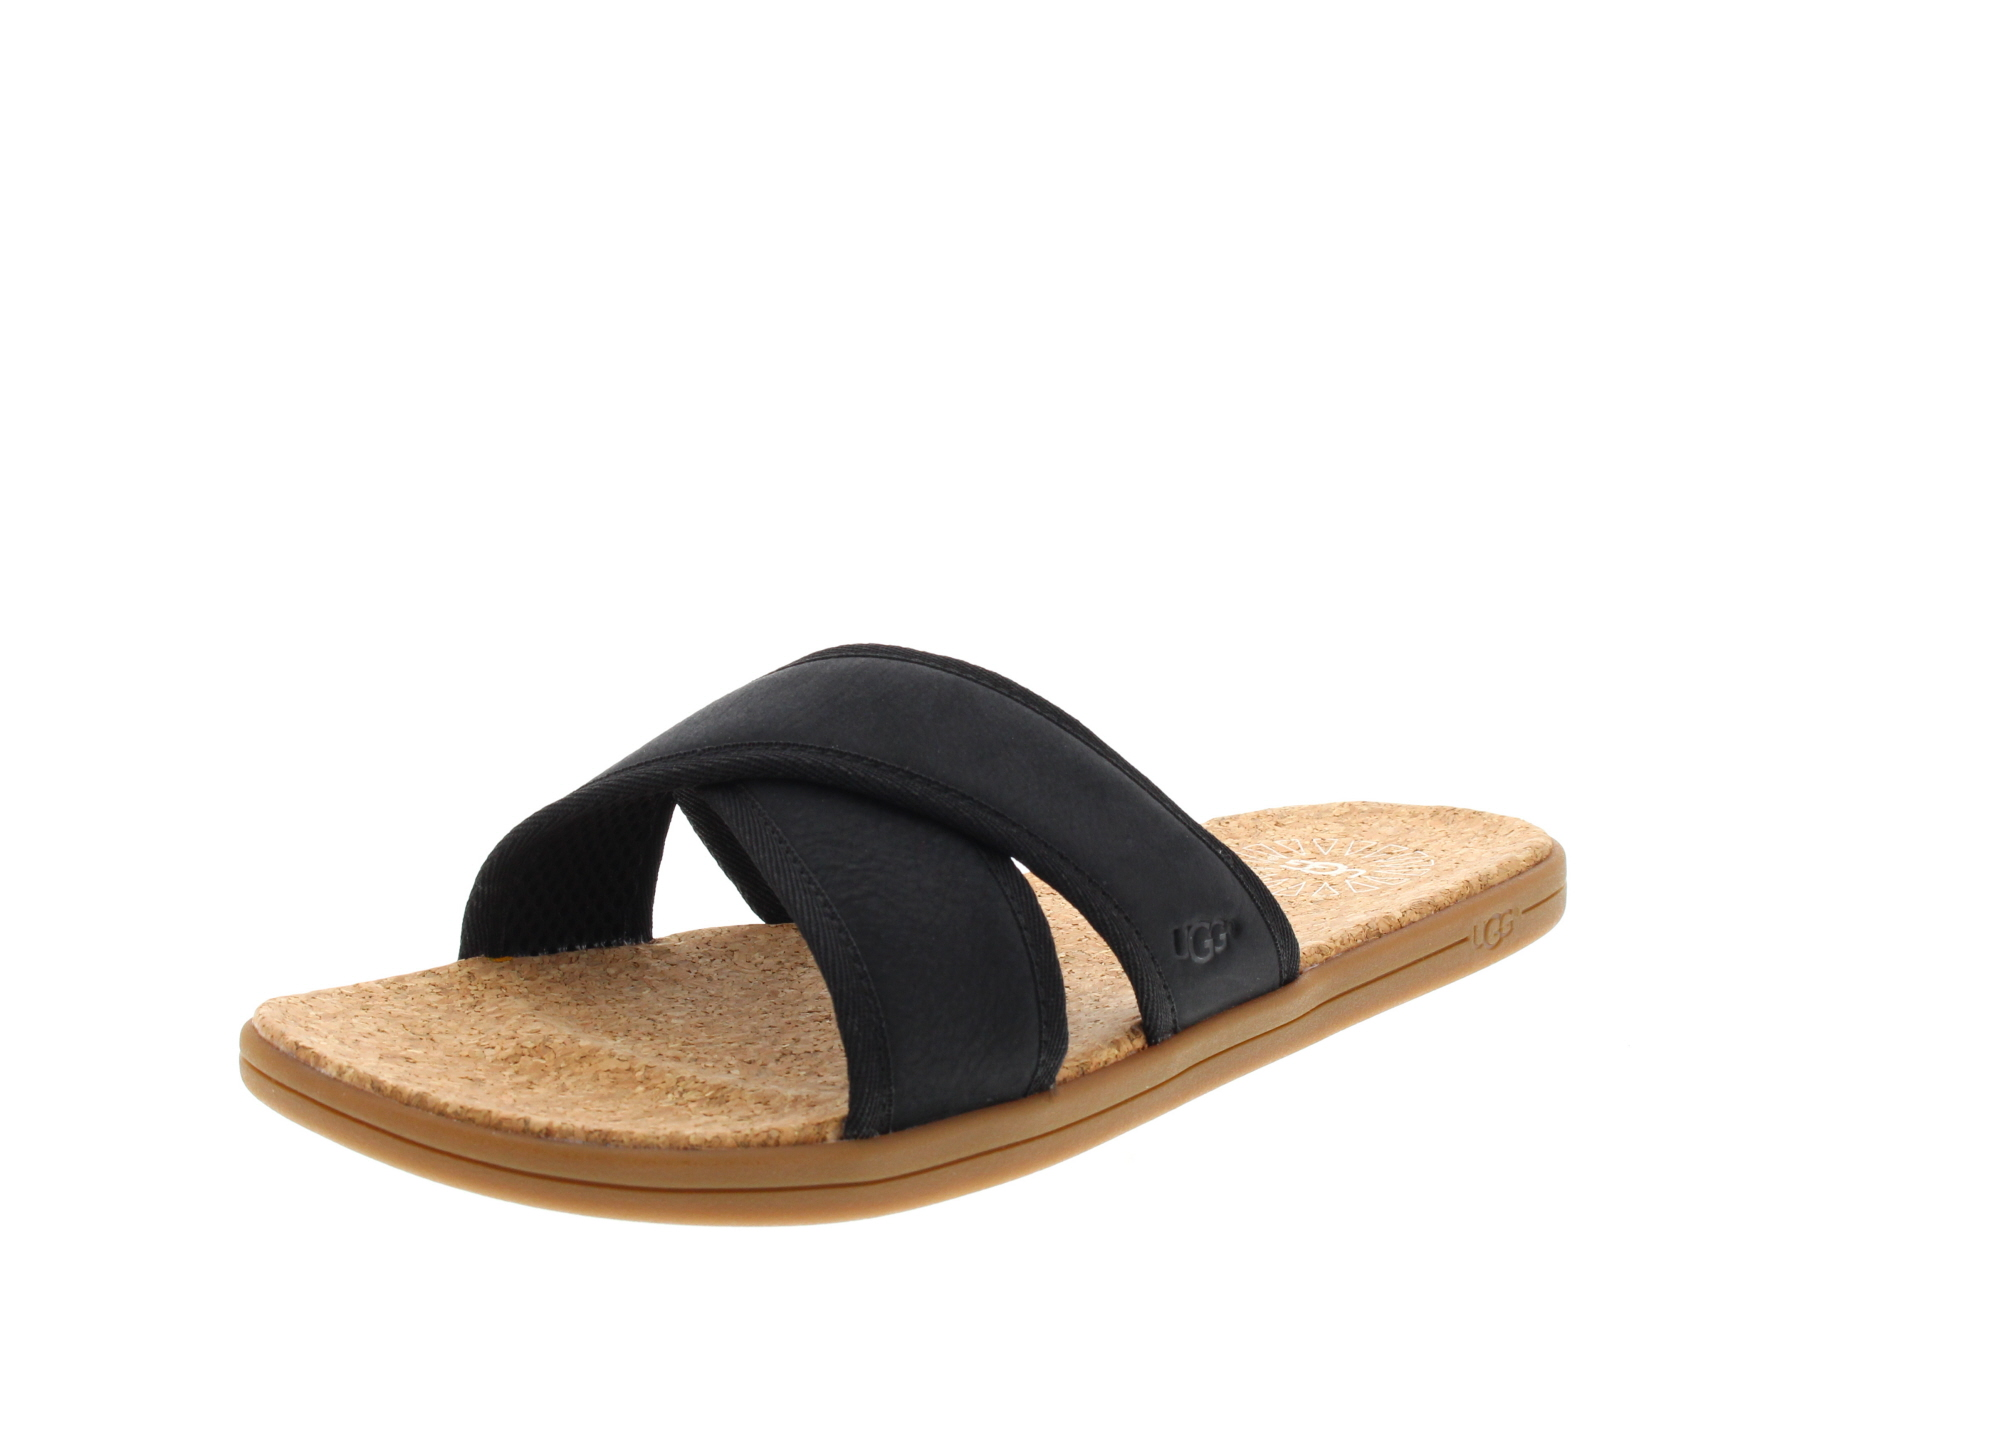 UGG in Übergröße - SEASIDE SLIDE 1092172 - black